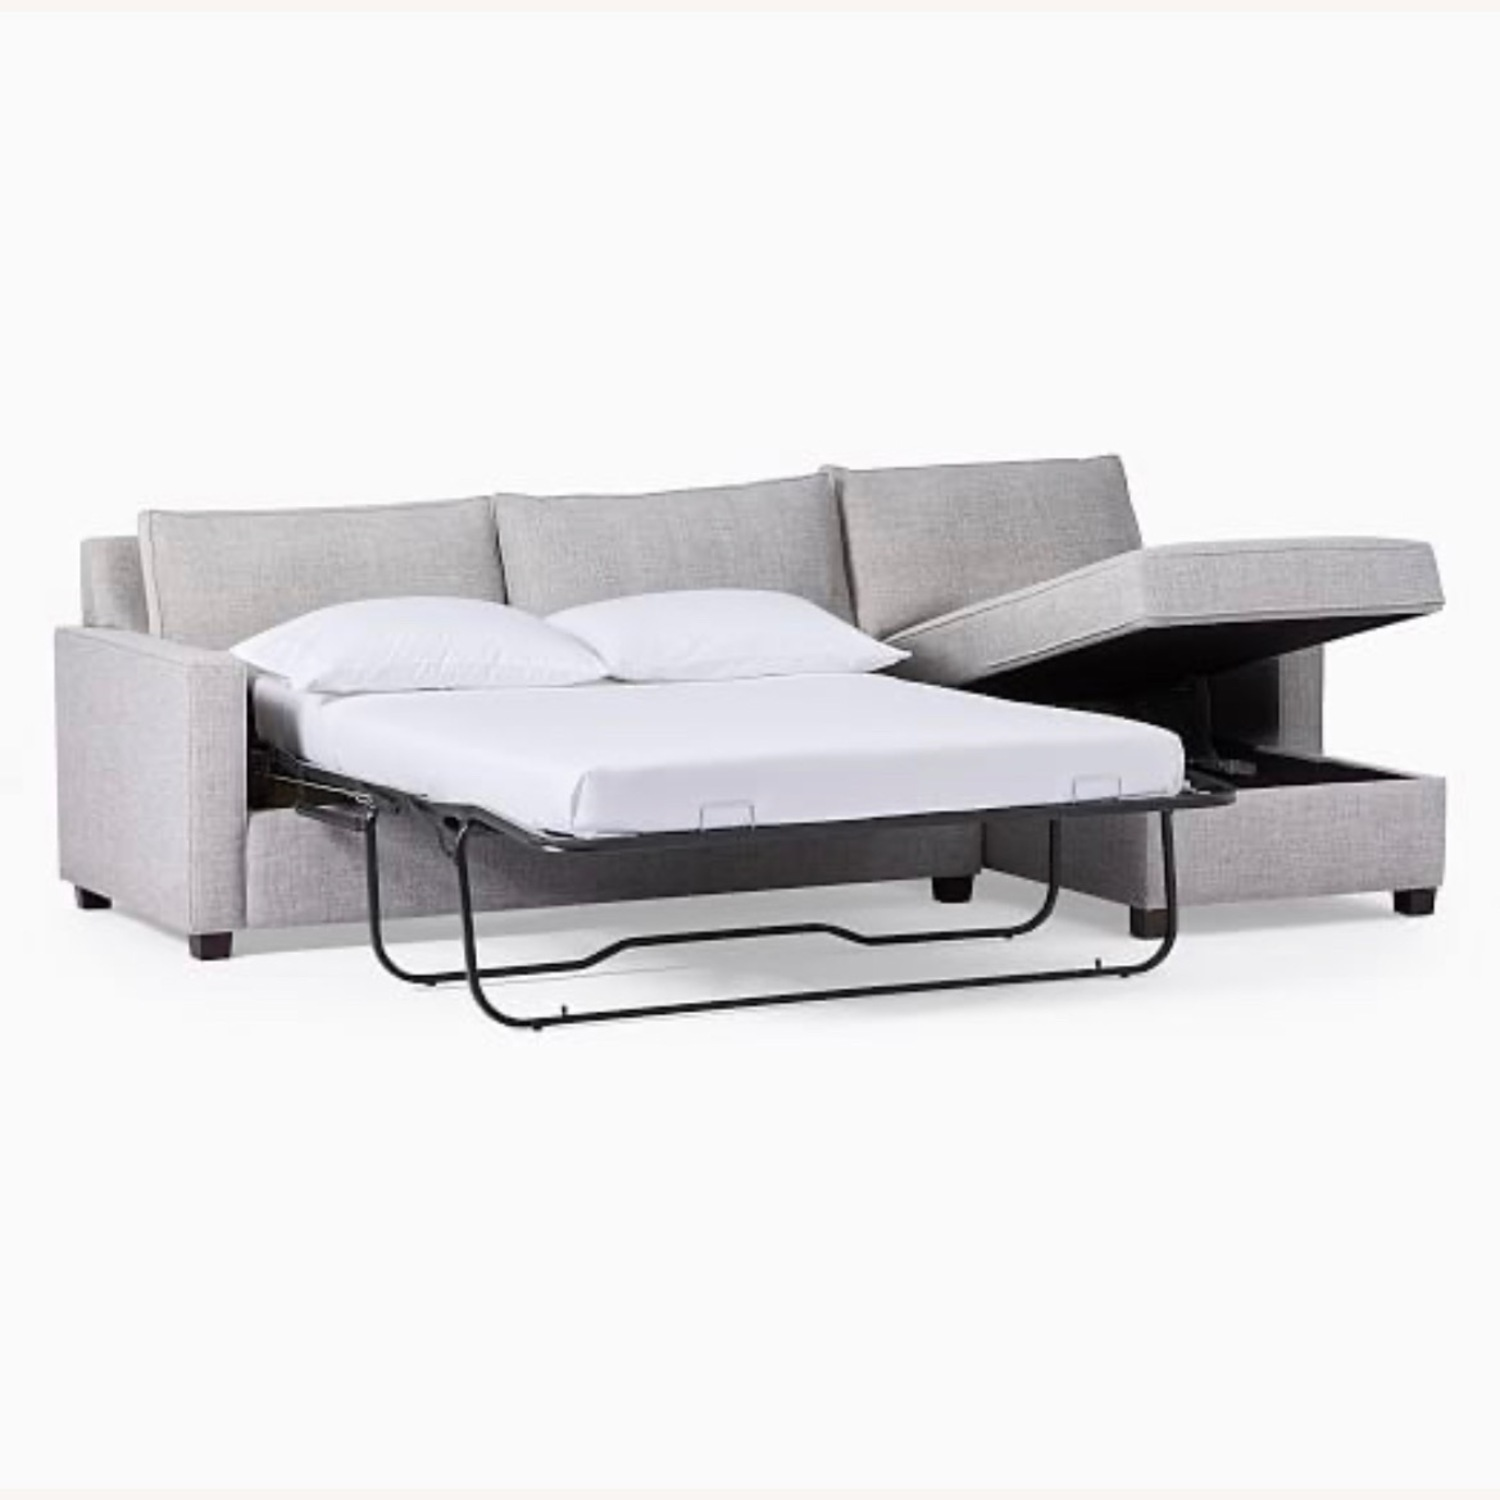 West Elm Henry Sleeper Sofa with Storage Chaise - image-0